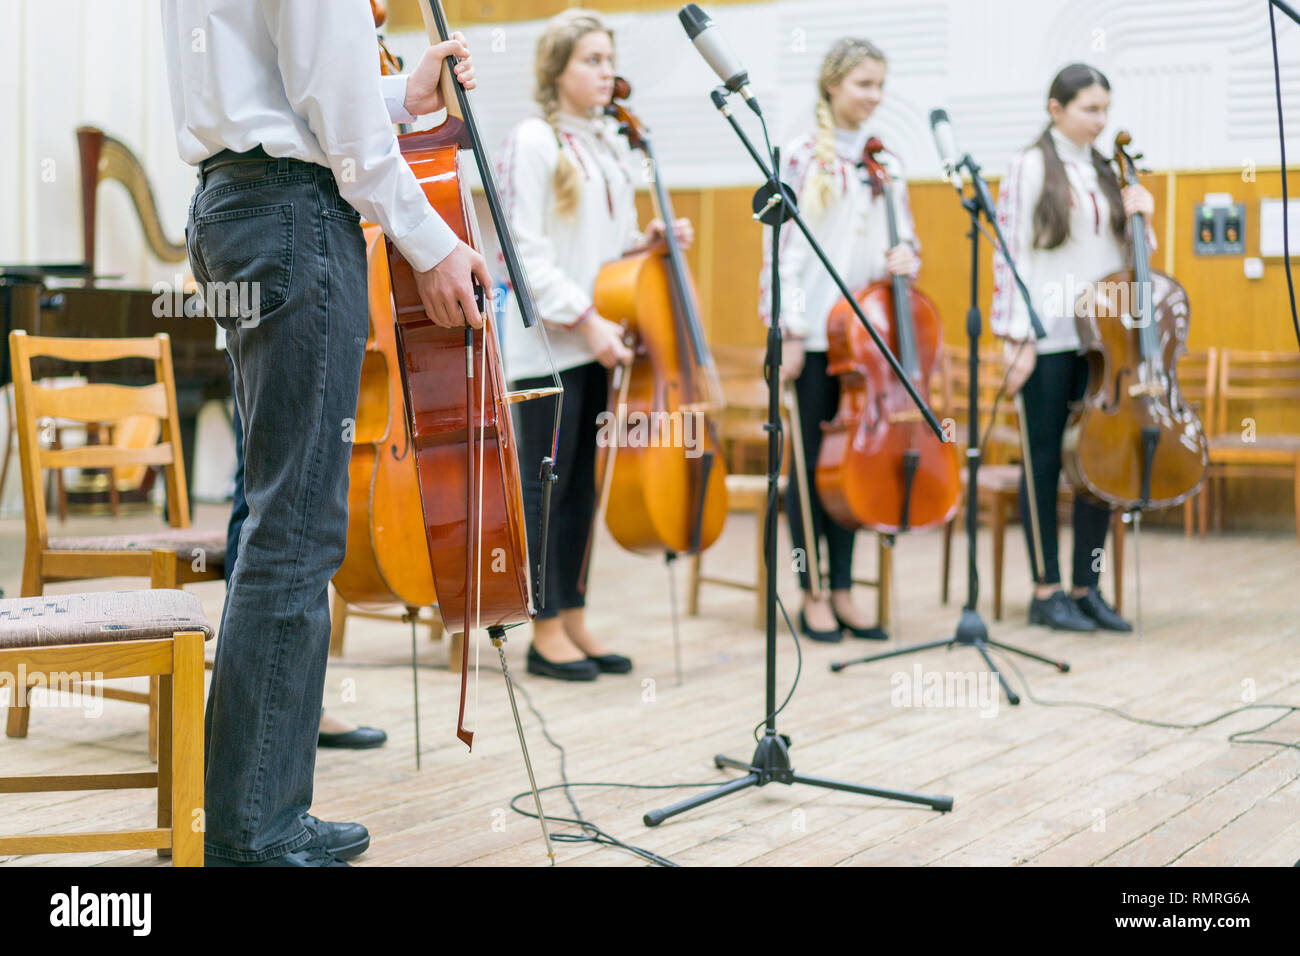 Children's violin ensemble. Children with violins on stage. Children's initiative, small talents. Early child development. Blurred. - Stock Image